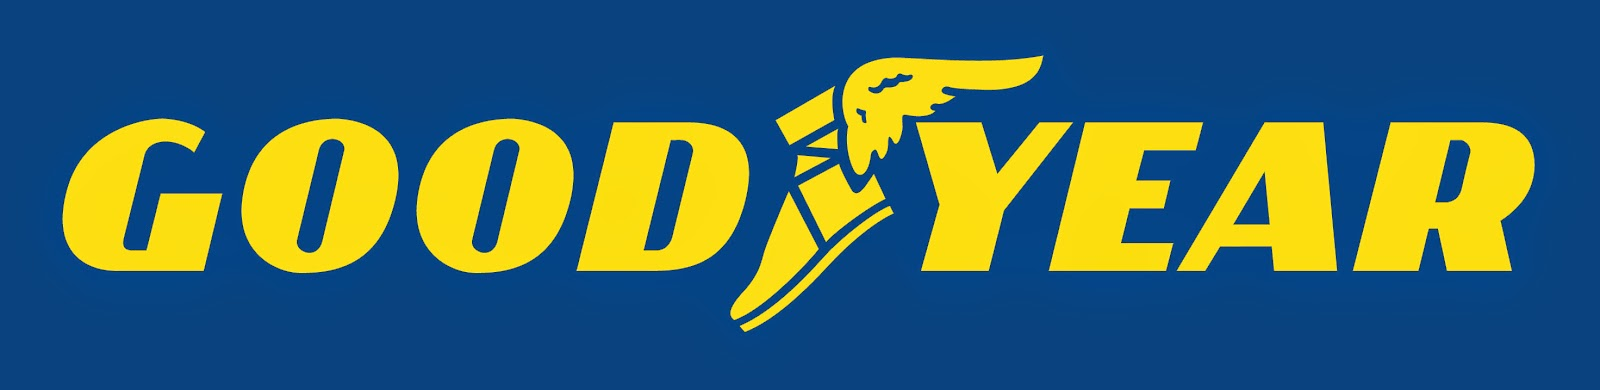 Goodyear tyres in pune